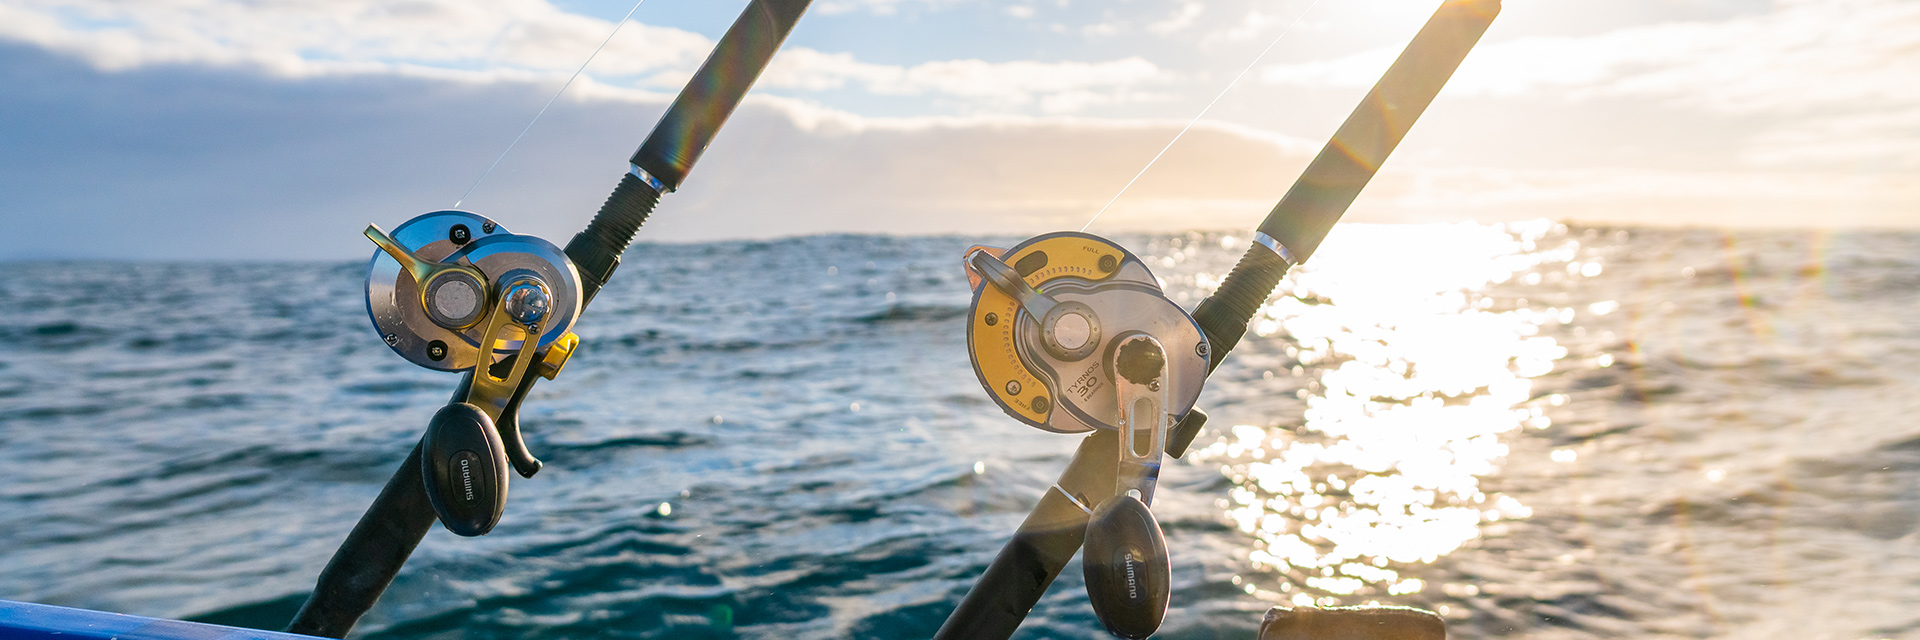 Close-up of two fishing rod reels, poles and handles. Sunlight reflects on the sea behind.